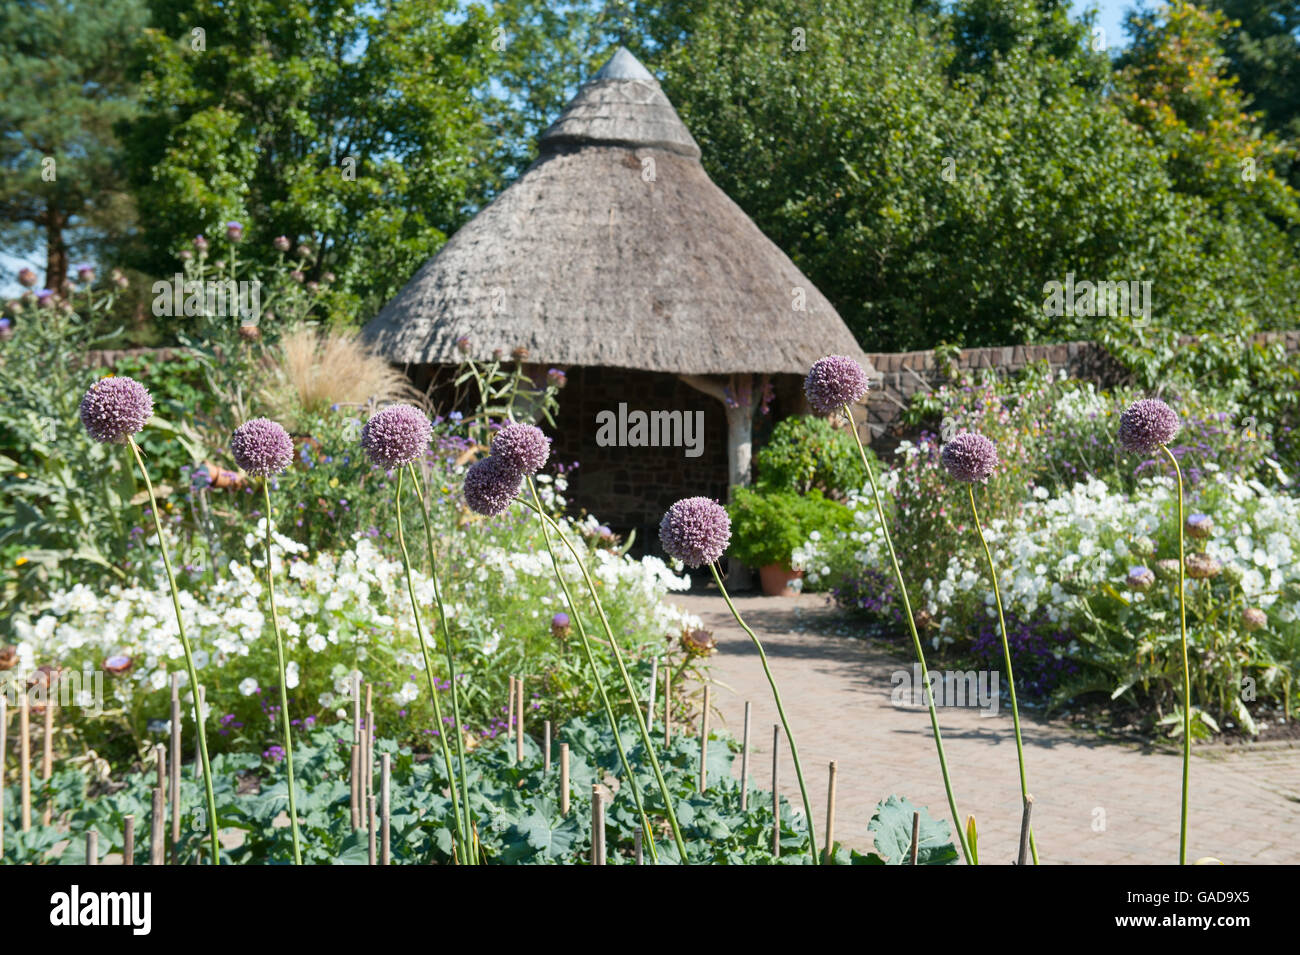 Elephant garlic (Allium ampeloprasum) by a Thatched Roof Summer House in the Fruit and Vegetable Garden at RHS Rosemoor - Stock Image